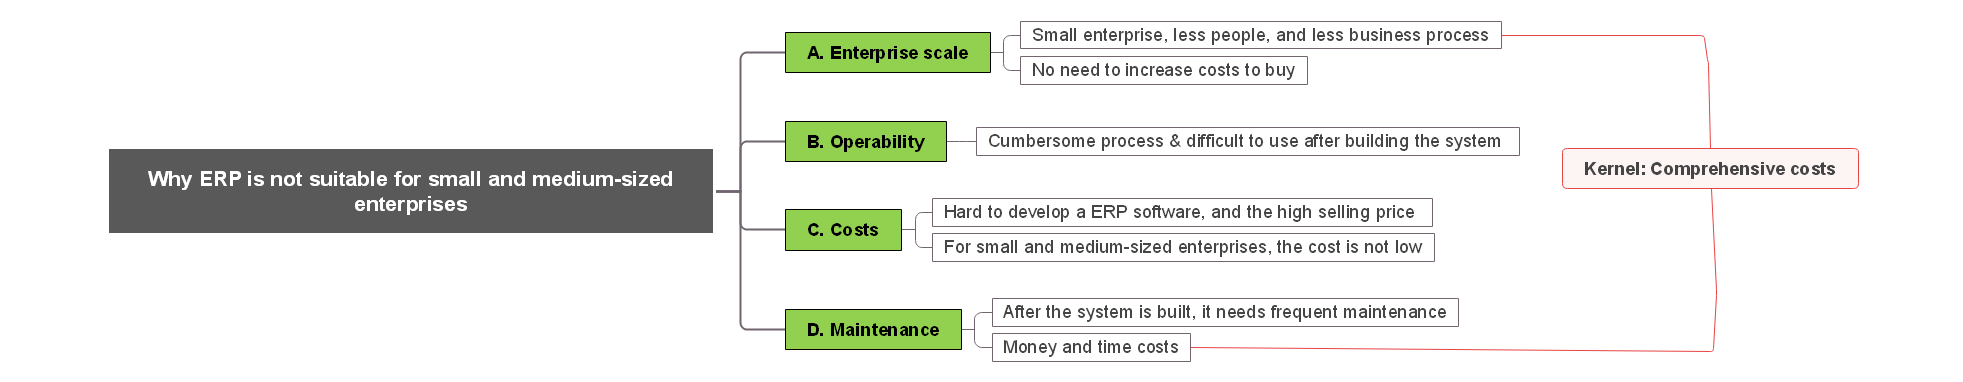 ERP is not suitable for SMEs